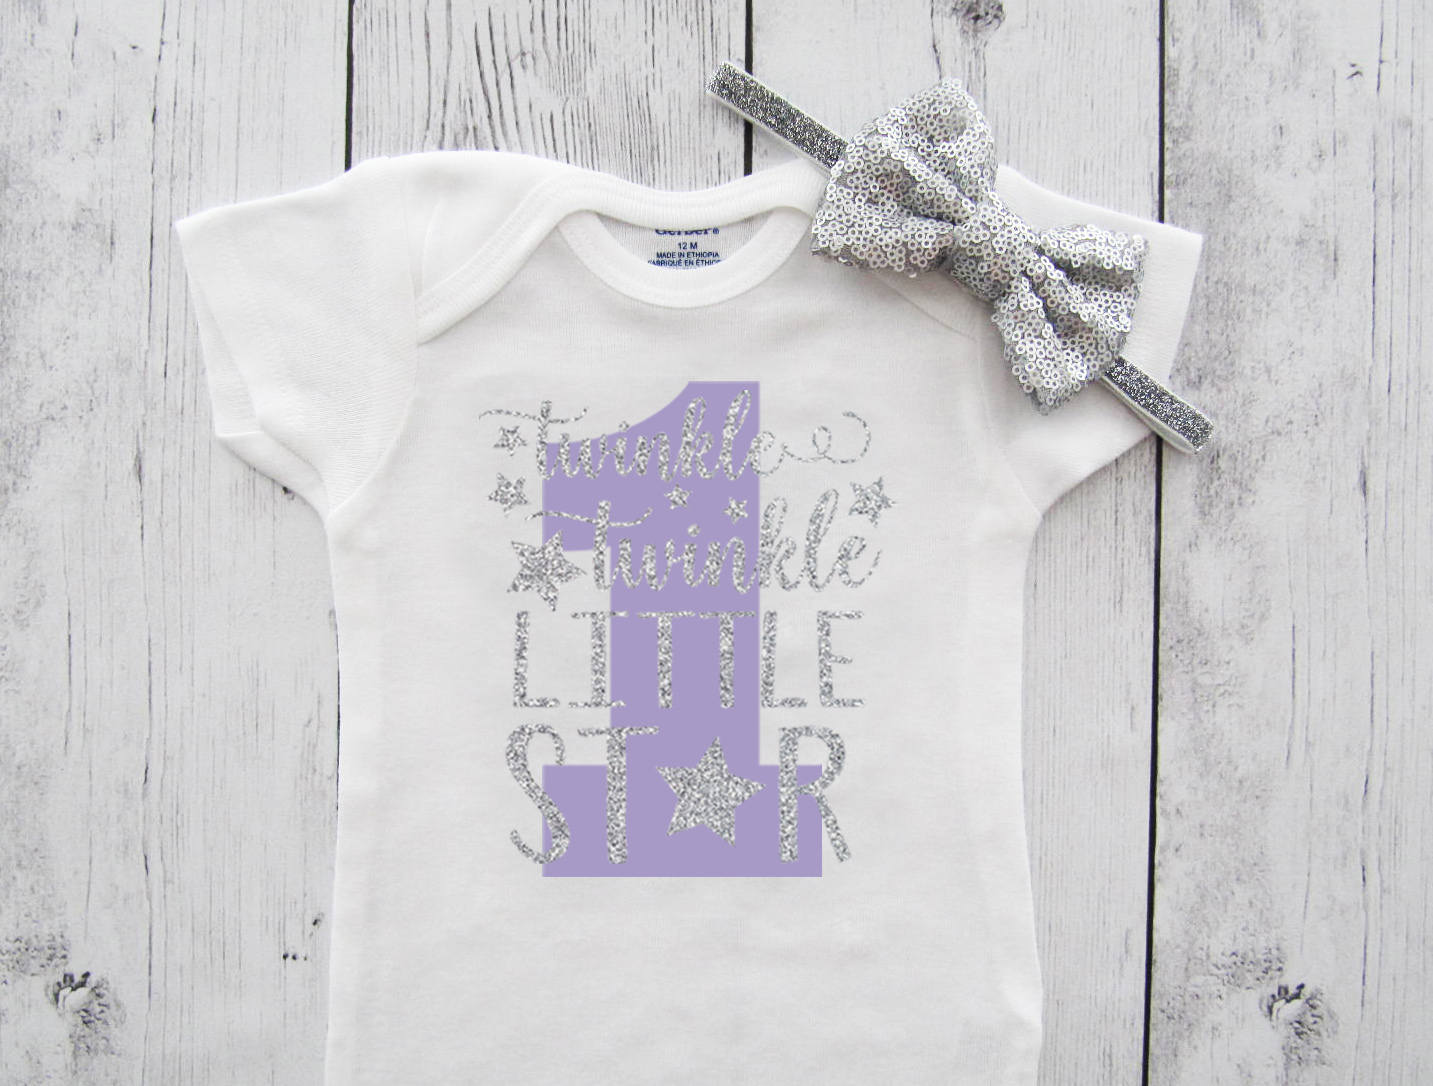 Twinkle Twinkle Little Star First Birthday Onesie in purple and silver glitter - girl birthday, lavender silver, star 1 birthday